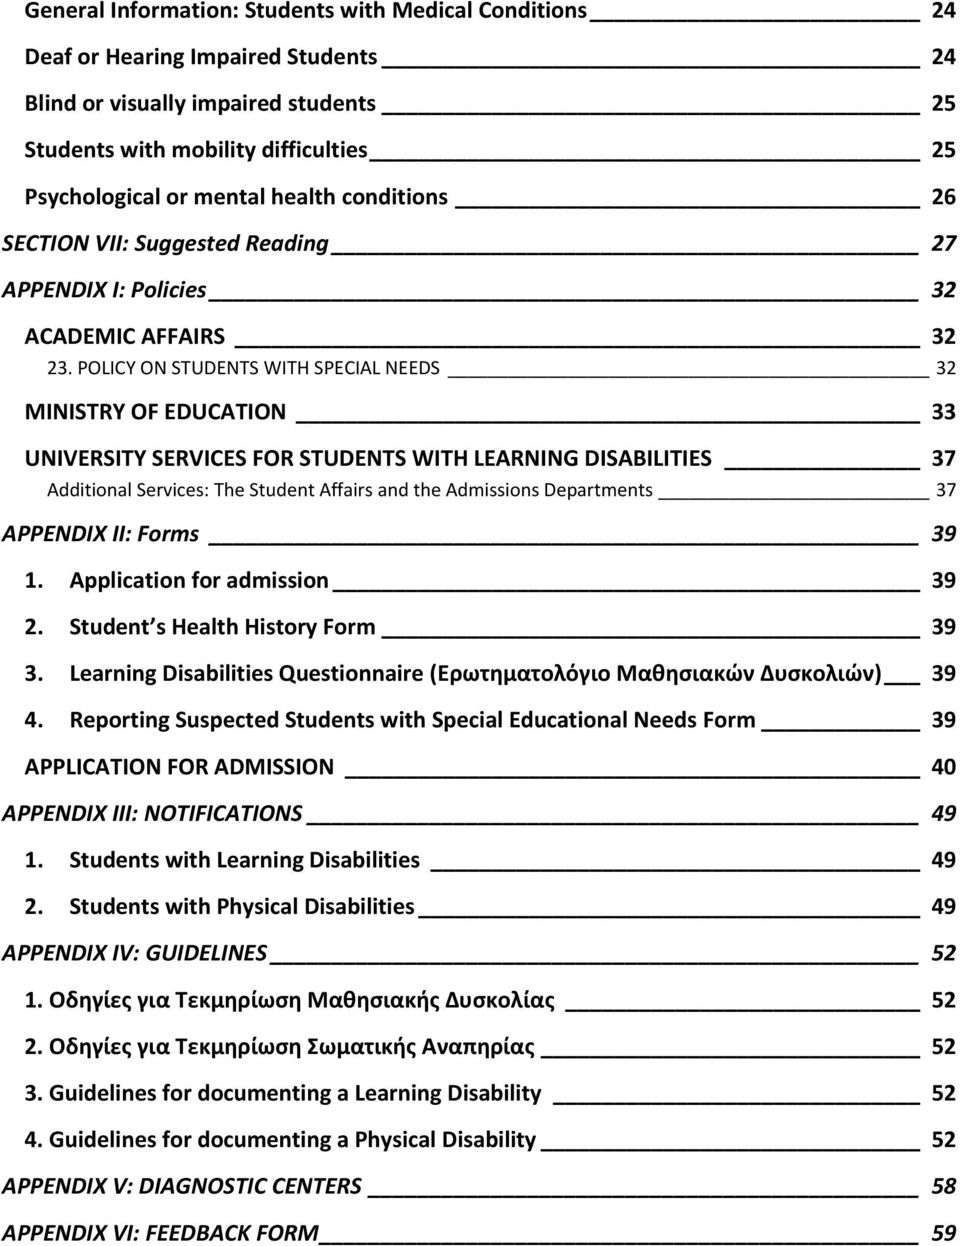 POLICY ON STUDENTS WITH SPECIAL NEEDS 32 MINISTRY OF EDUCATION 33 UNIVERSITY SERVICES FOR STUDENTS WITH LEARNING DISABILITIES 37 Additional Services: The Student Affairs and the Admissions